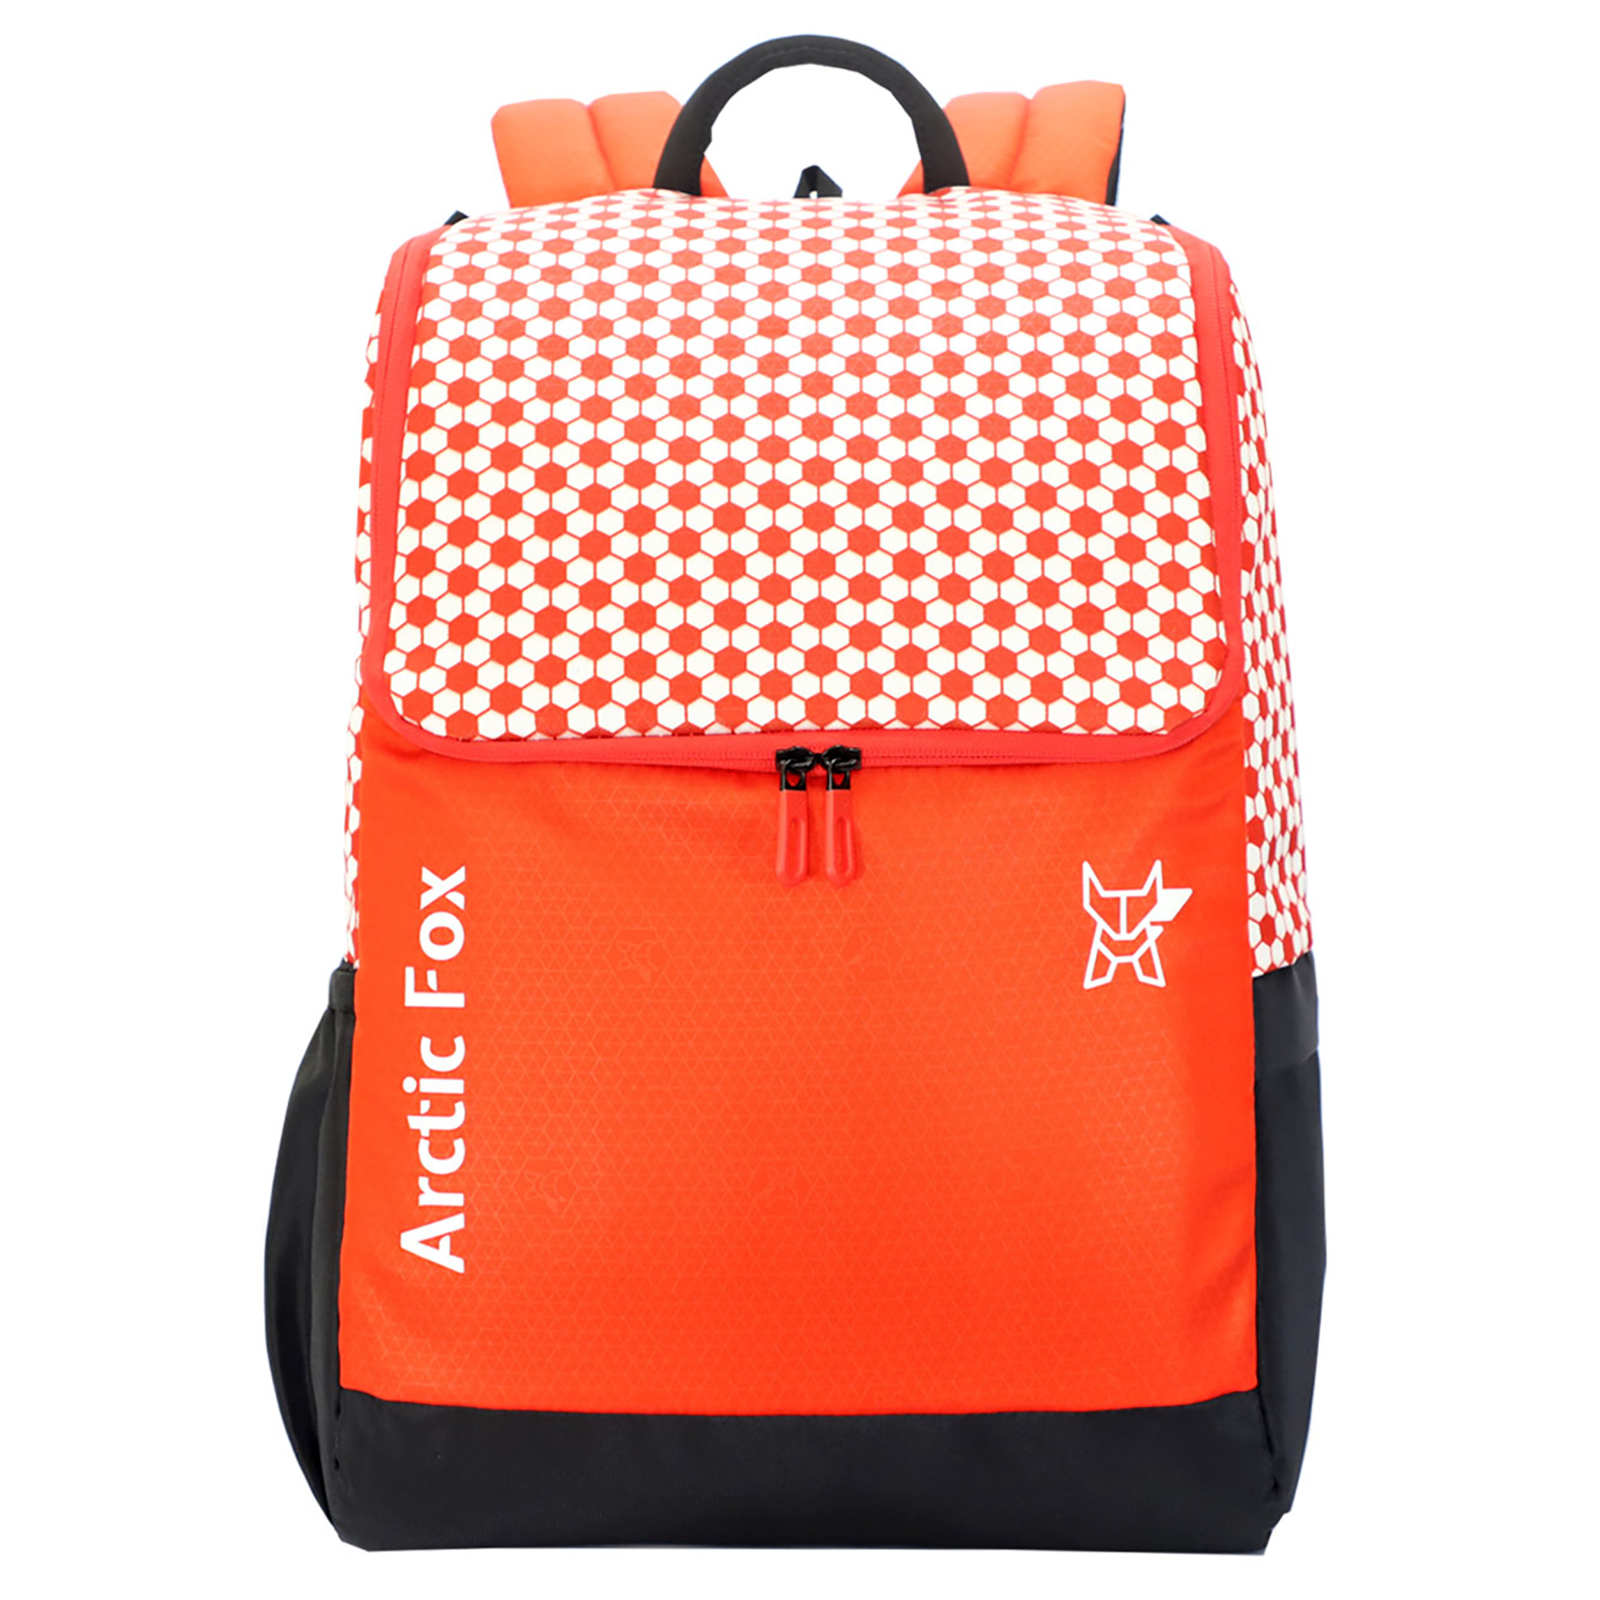 Arctic Fox Goal 20 Litres Polyester Backpack (SBS Branded Zippers, FJUBPKFIRON050020, Fiery Red)_1